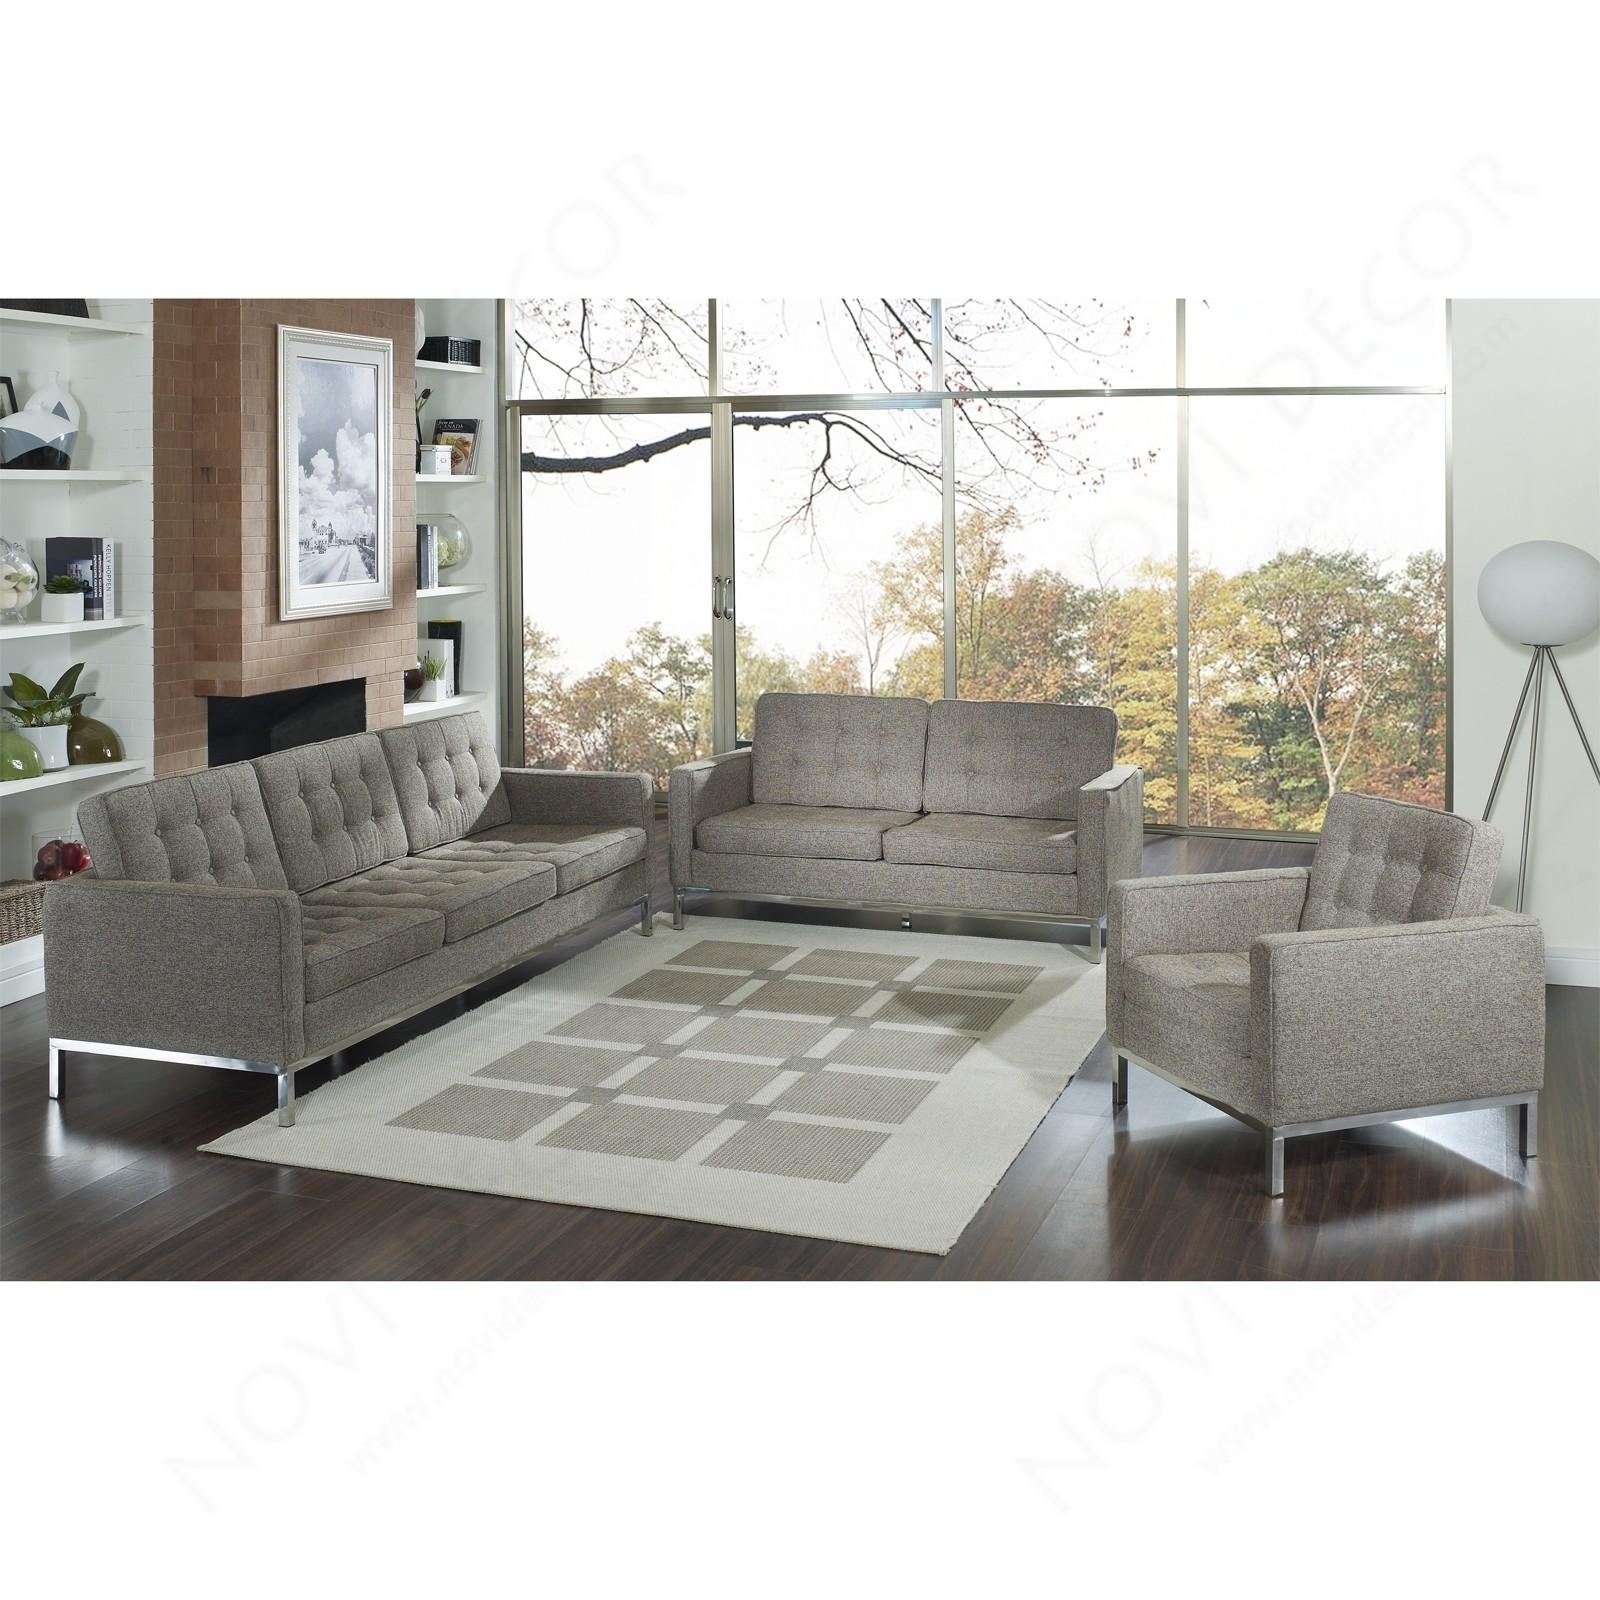 Florence Style Sofa In Wool (Multiple Colors) | Designer Reproduction Inside Florence Sofas (View 18 of 20)